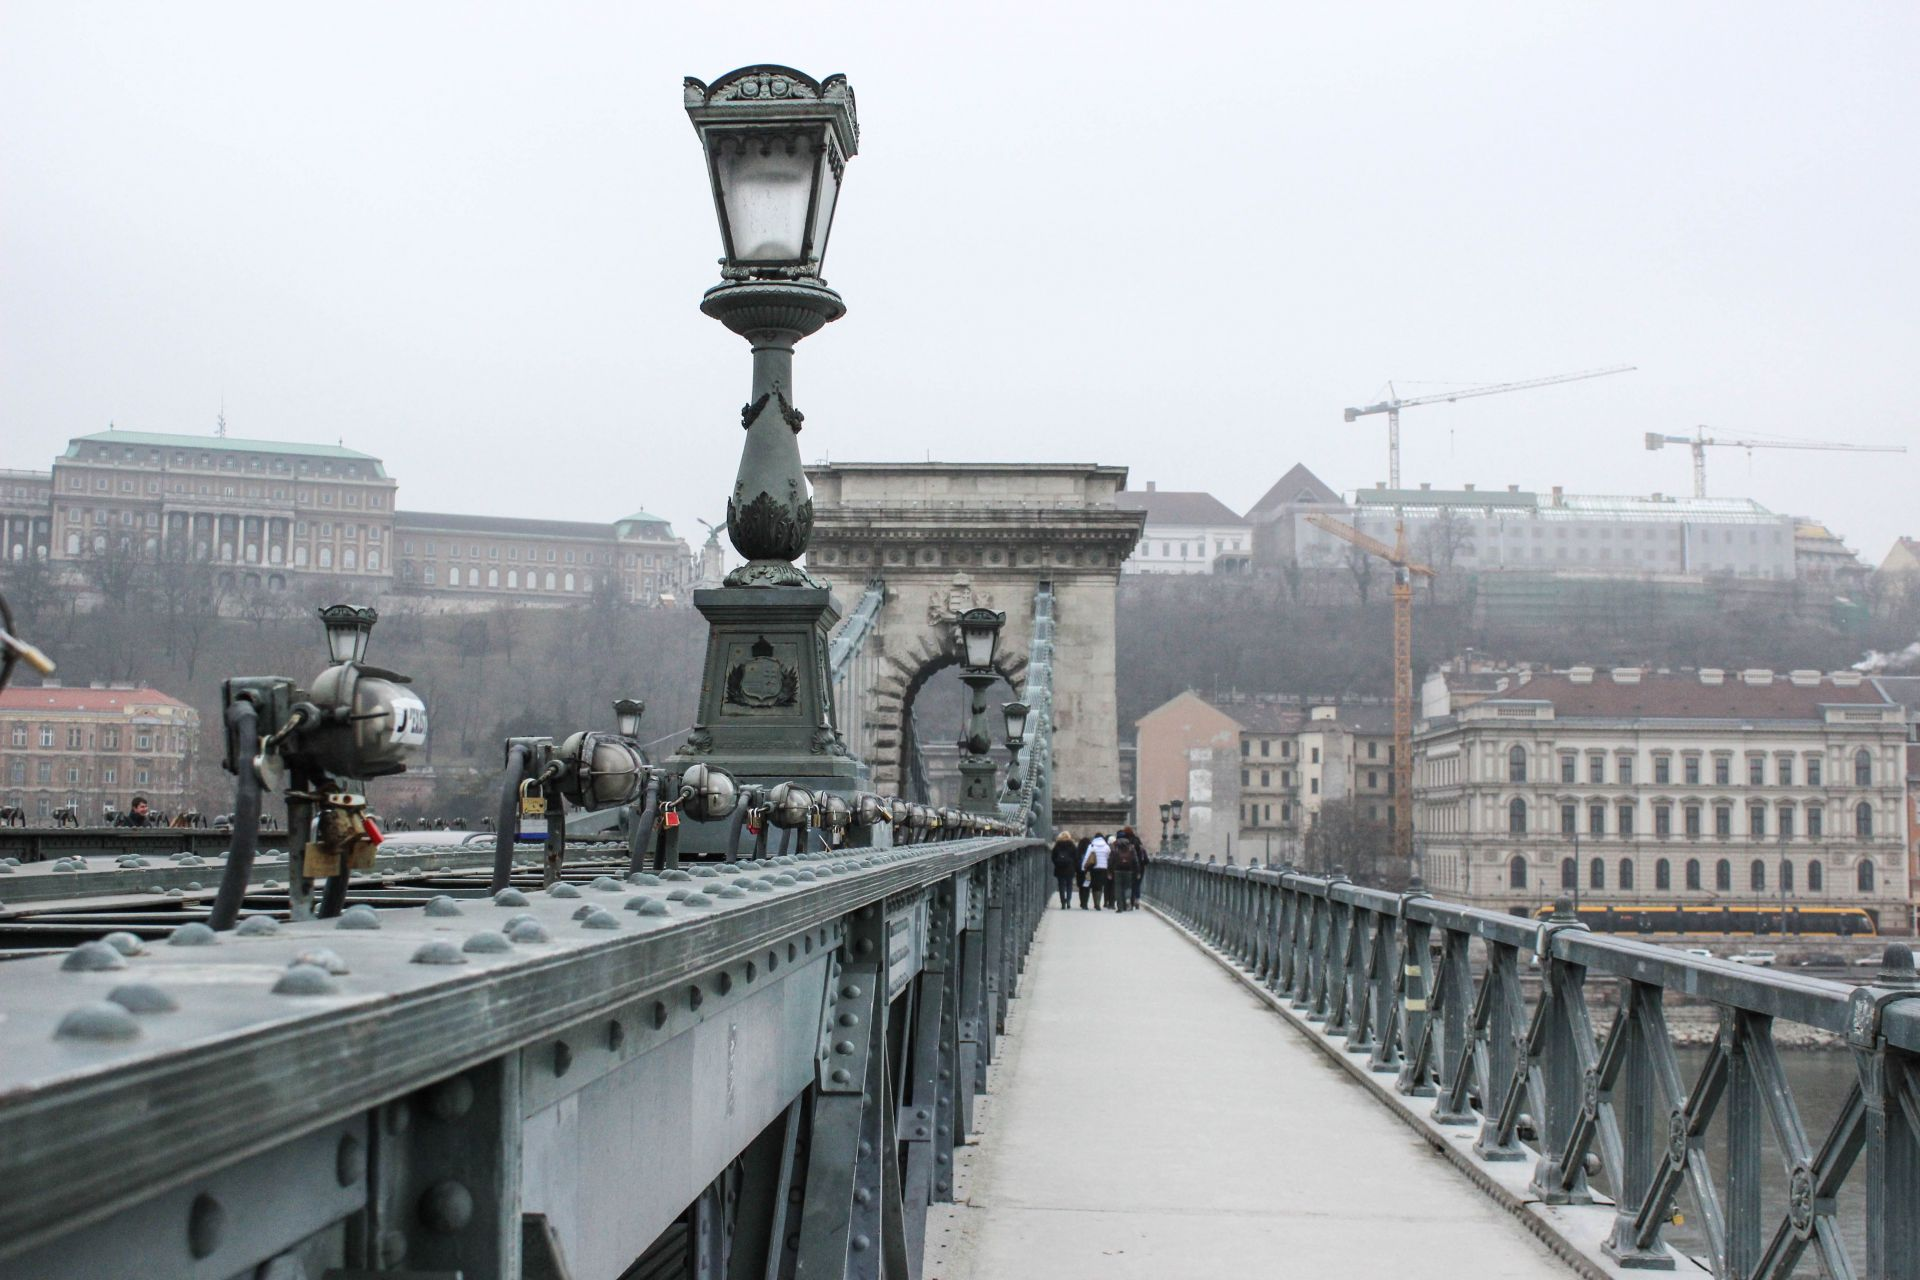 From Pest To Buda Walking The Chain Bridge In Budapest